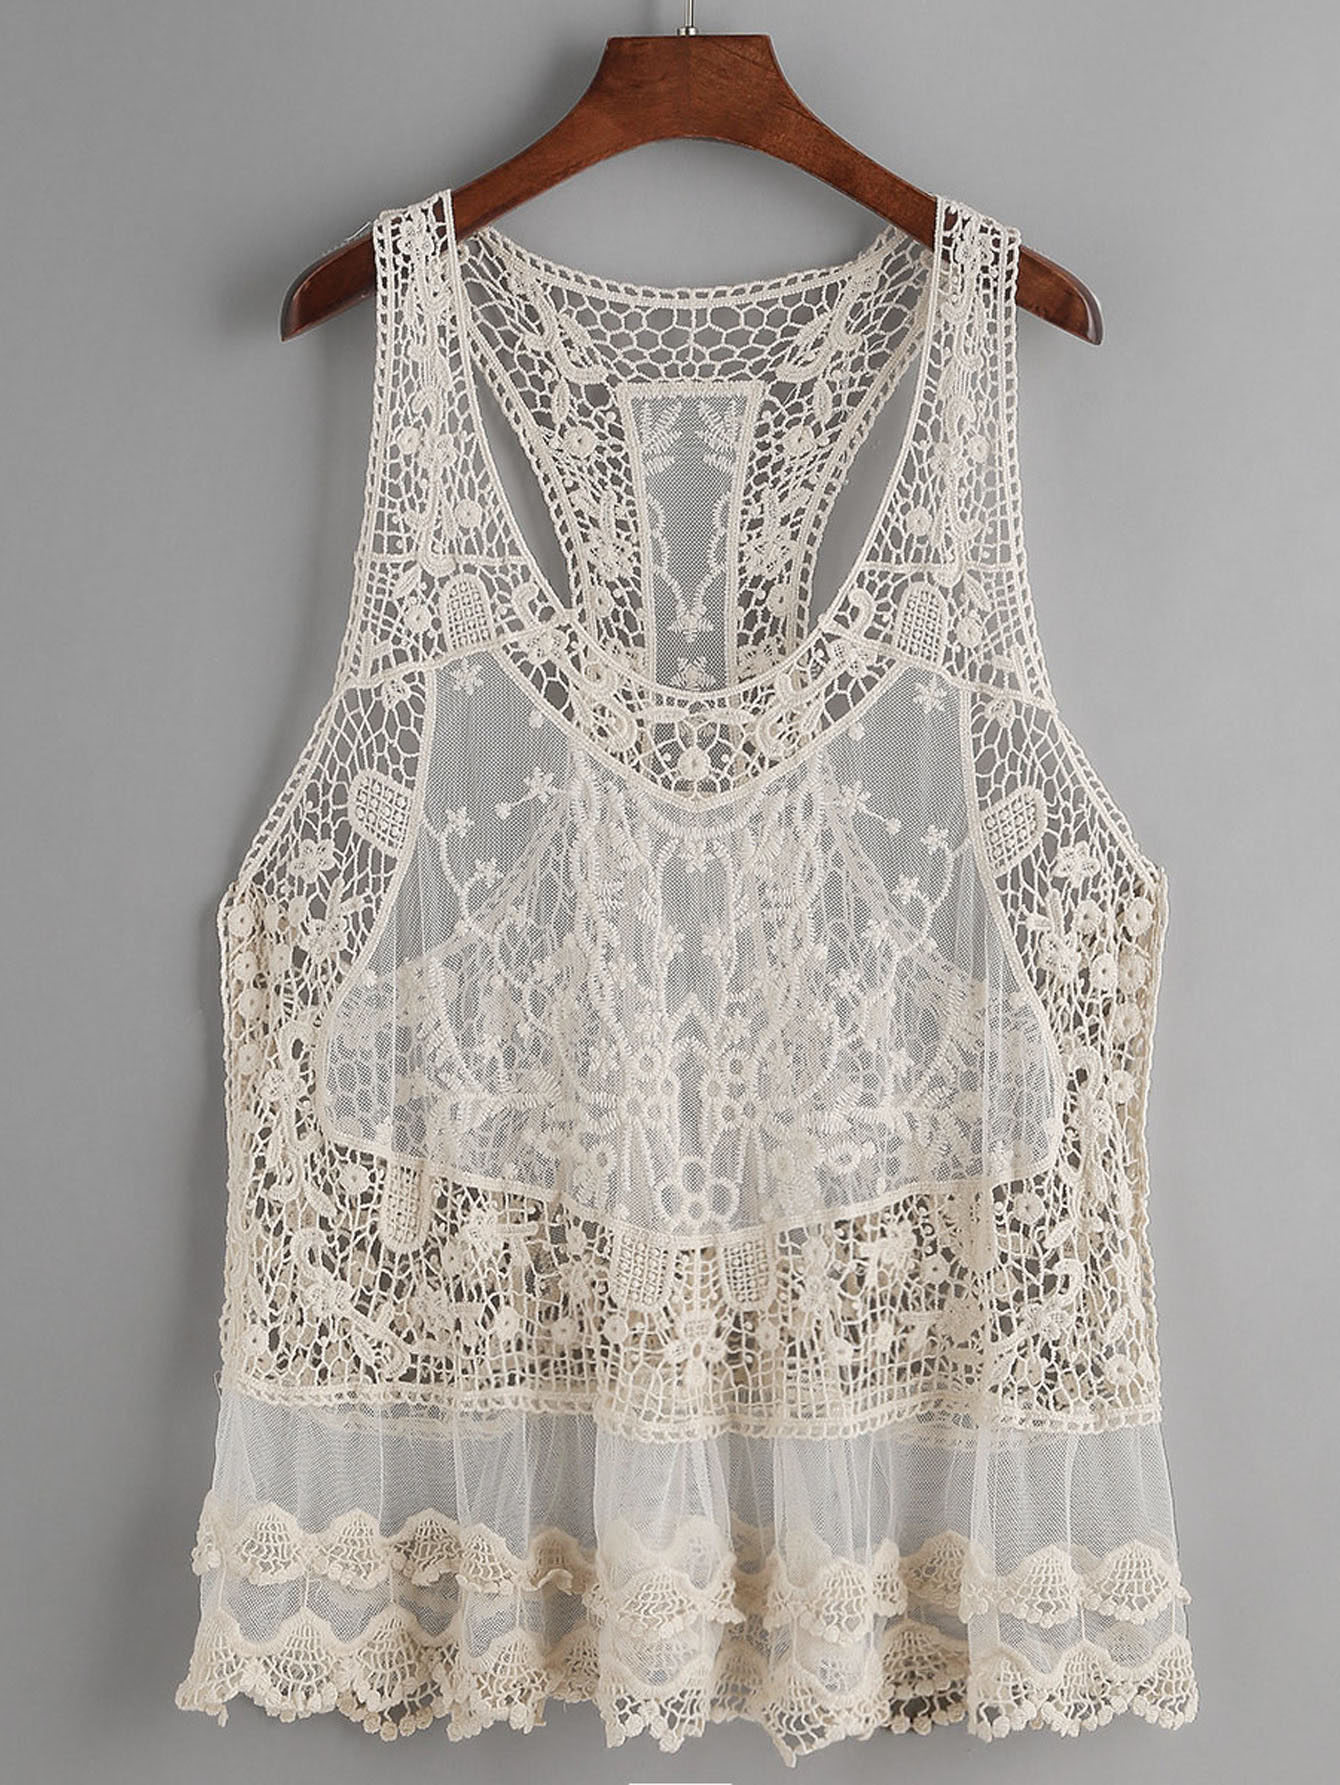 Beige Hollow Out Crochet Lace Tank Top crochet lace hollow out cami top